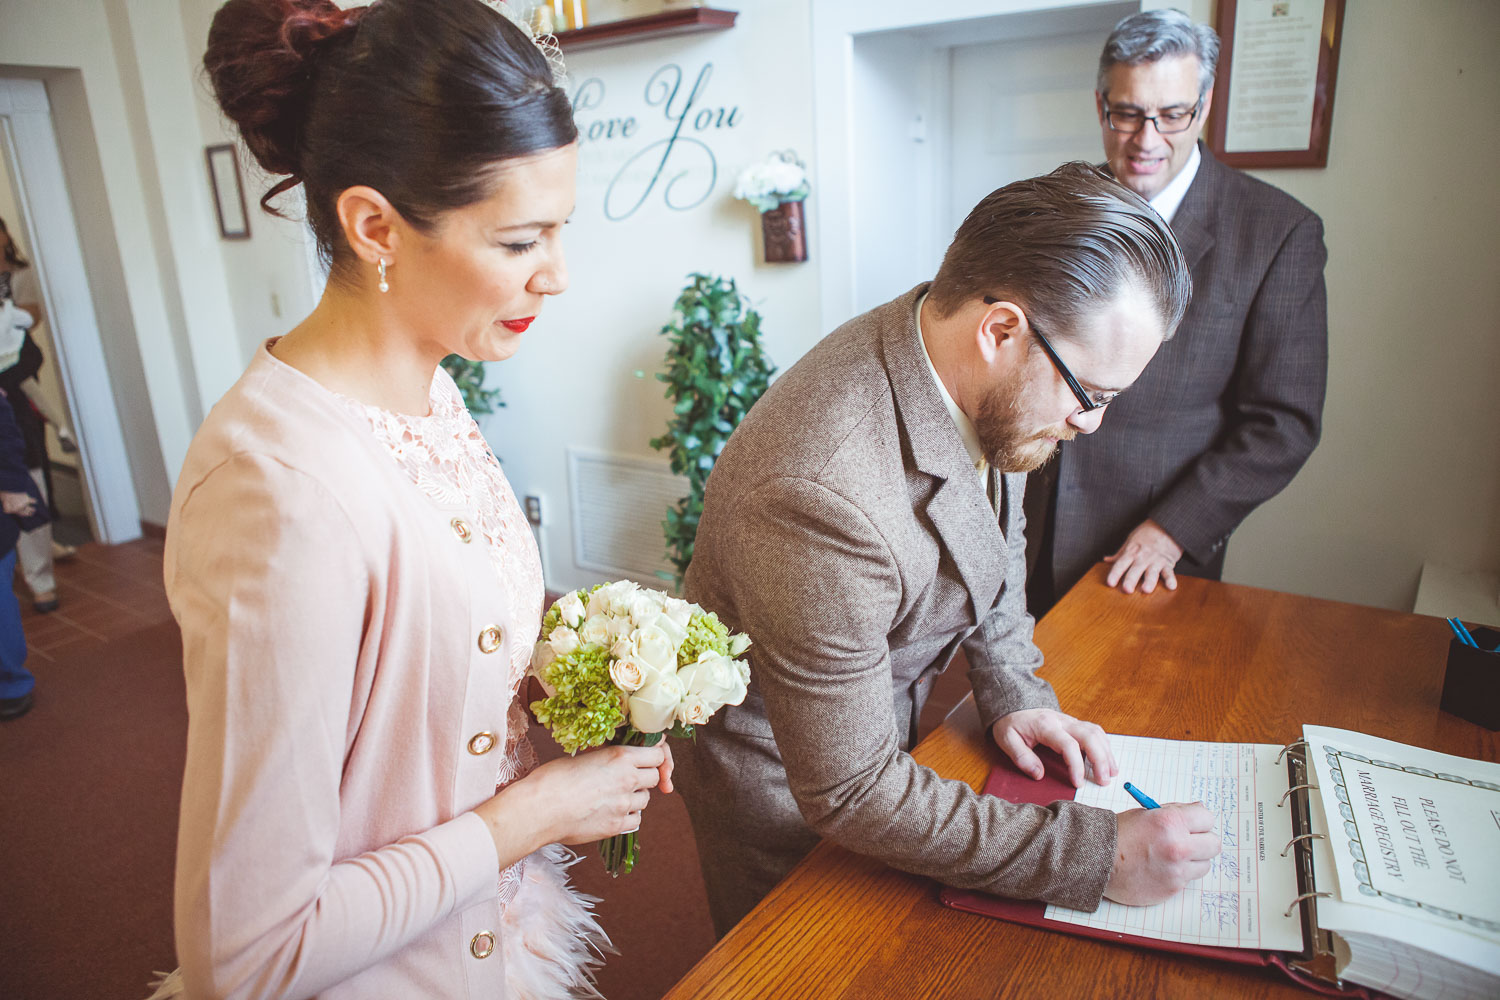 Signing in before elopement ceremony